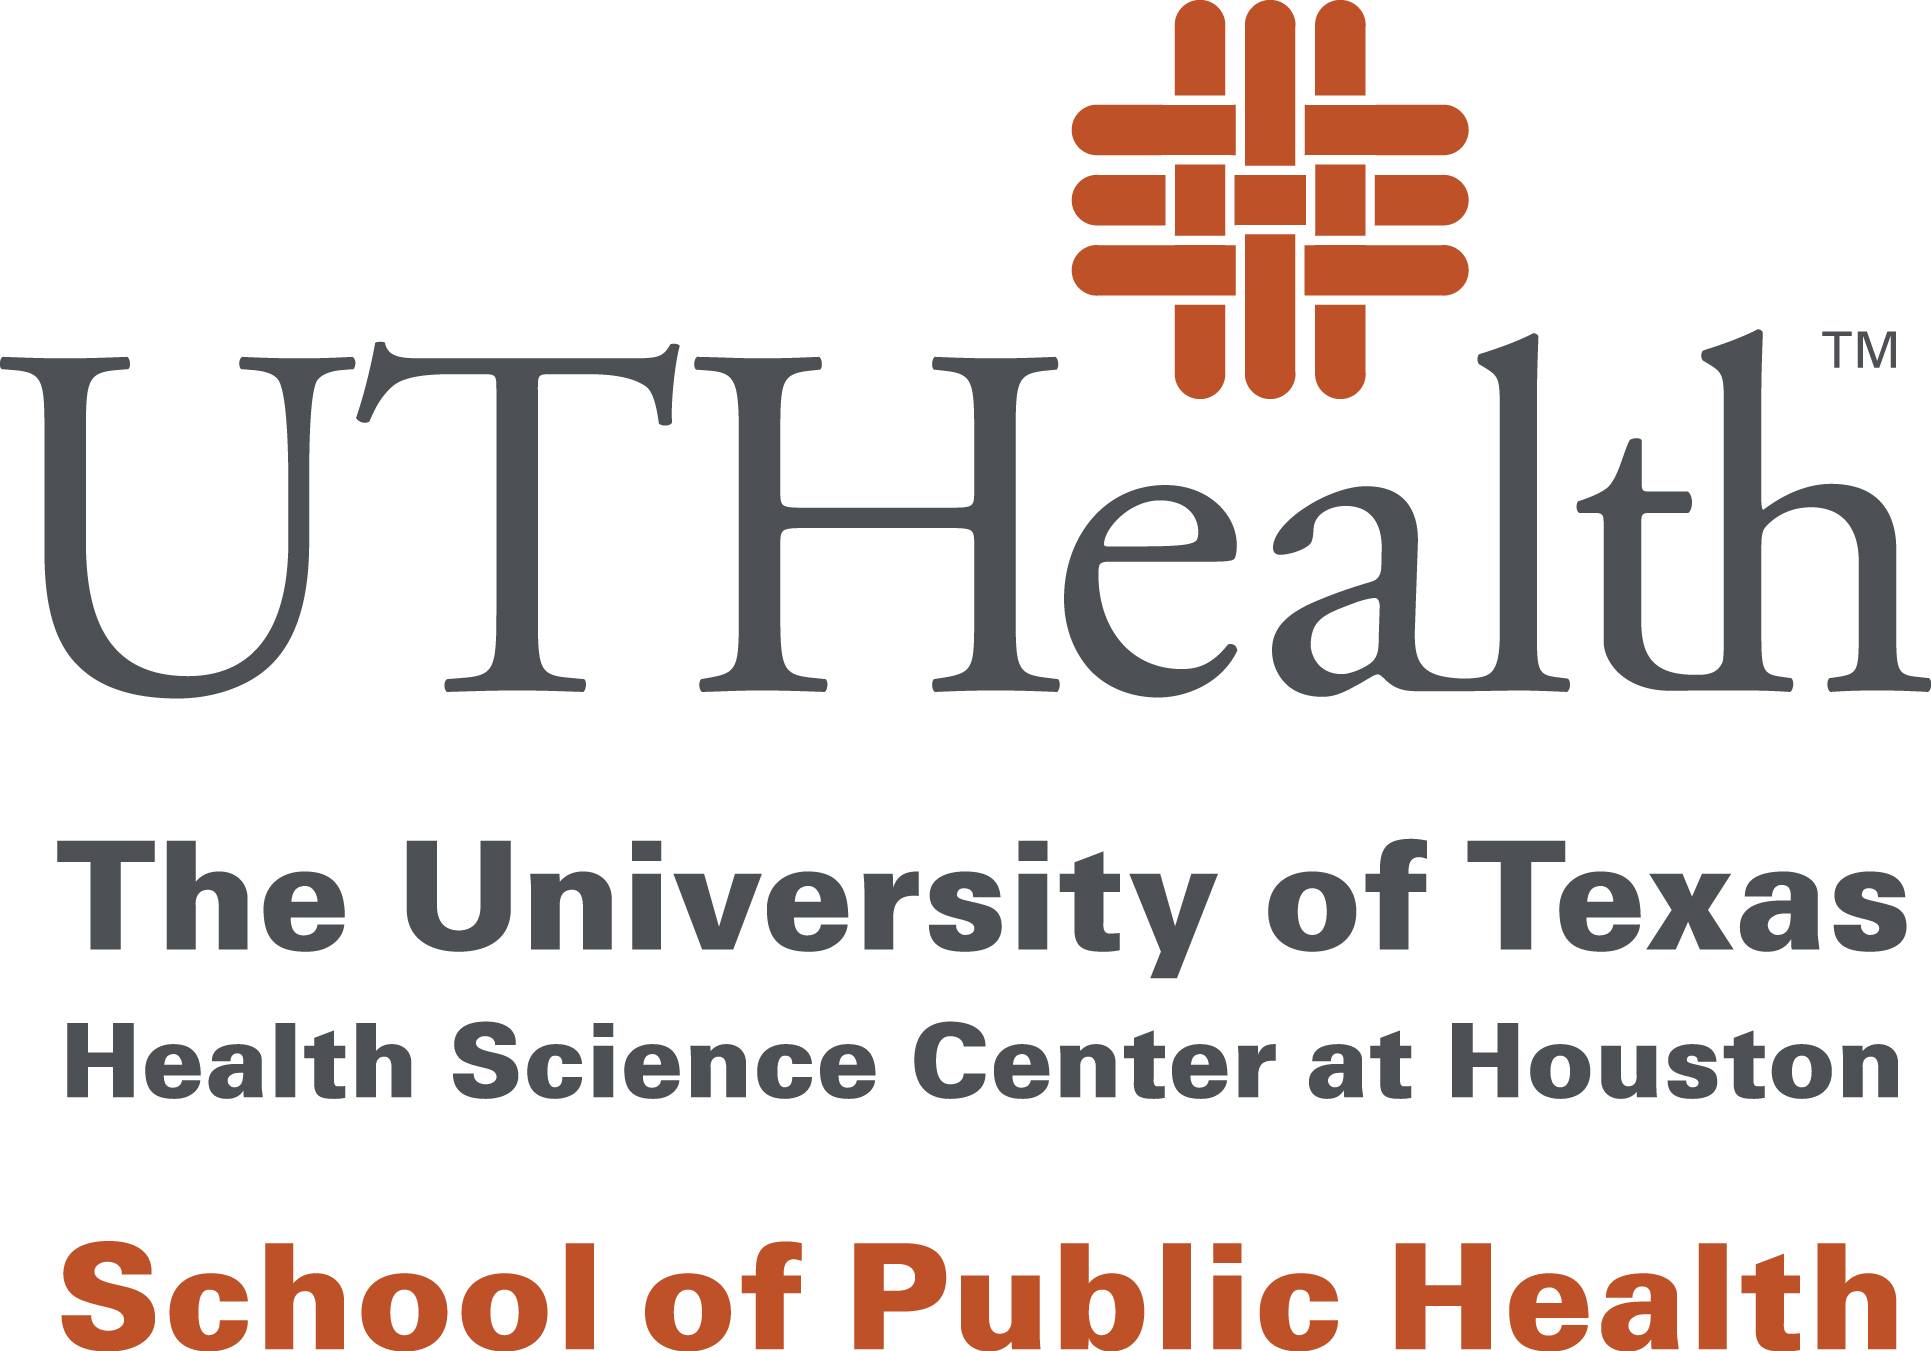 Public Health what to study in college